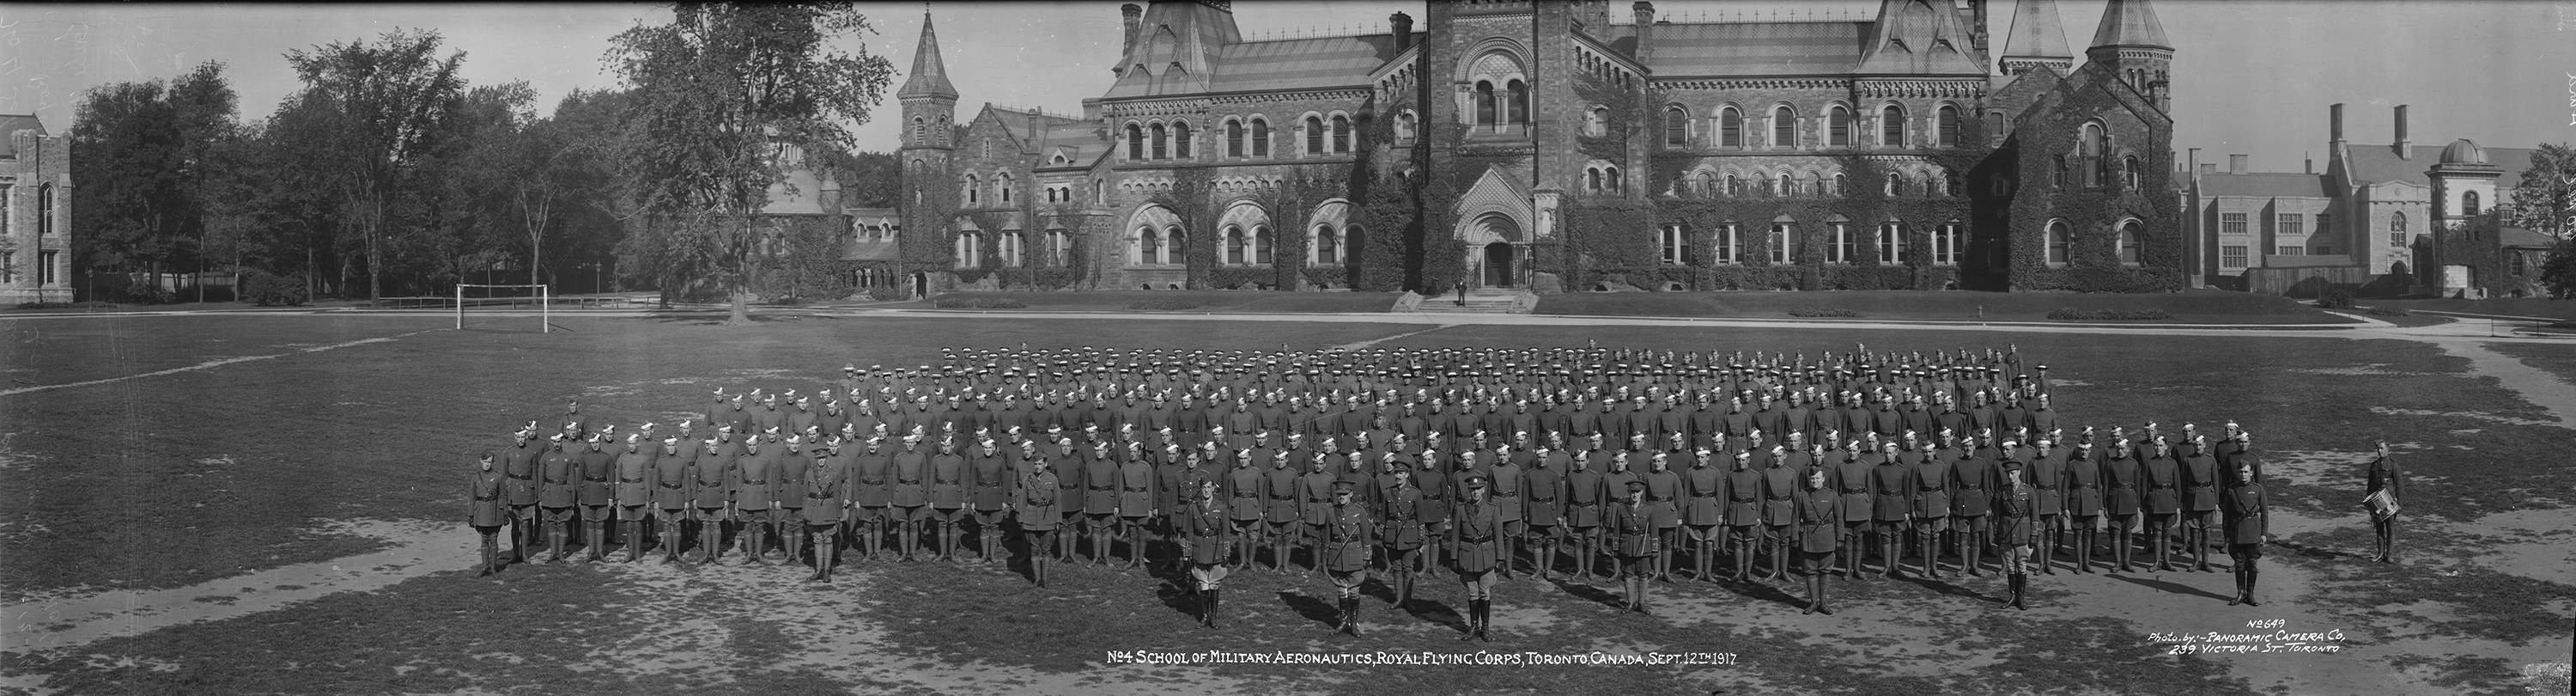 Students and staff of the No. 4 School of Military Aeronautics, Royal Flying Corps Canada, in Toronto on September 12, 1917. PHOTO: LAC MIKAN 4473699